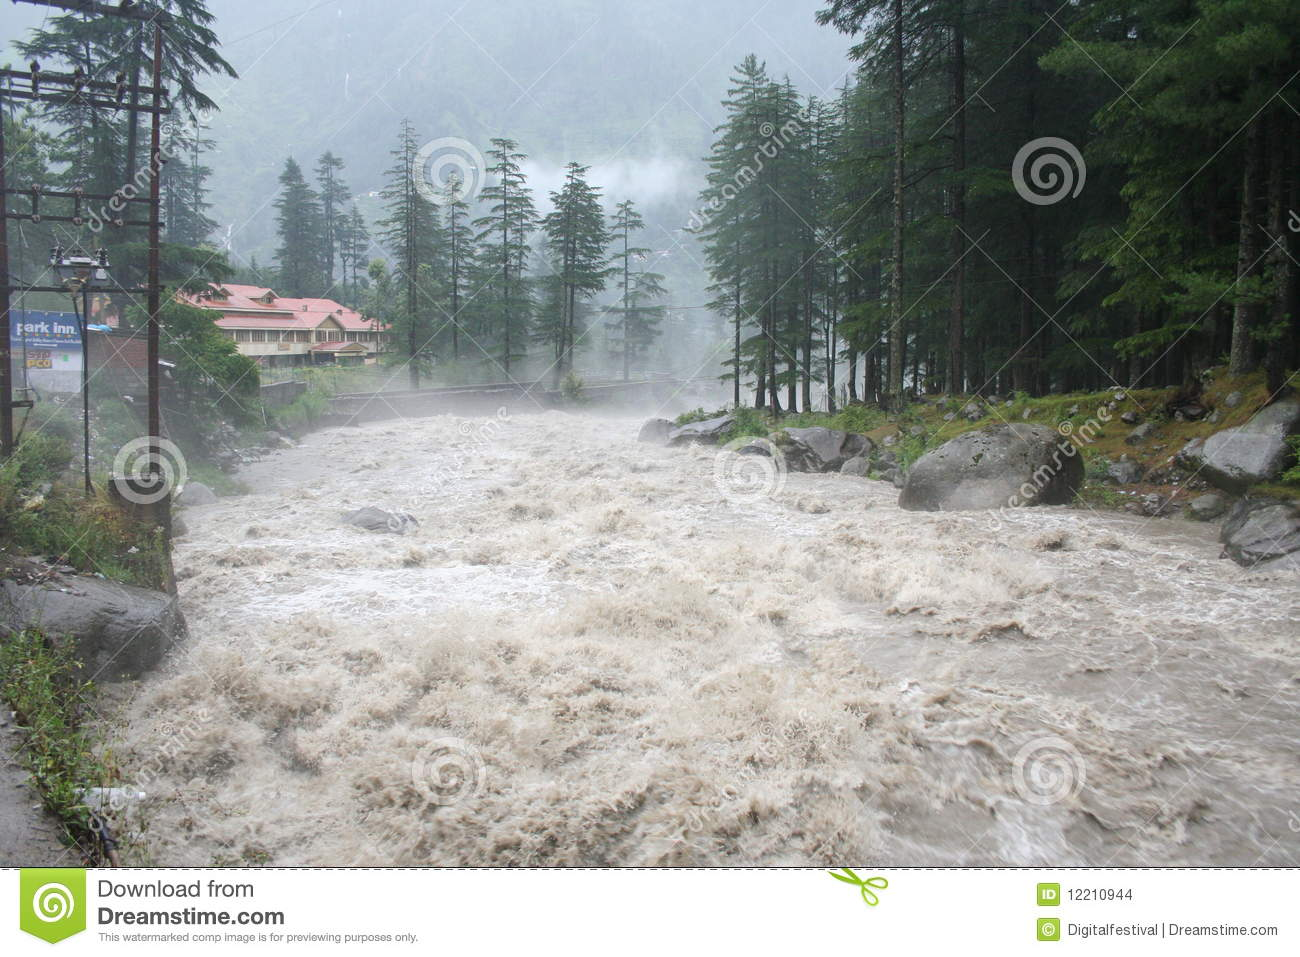 The Wire Torrent >> Wild Raging Himalayan River Torrent Manali India Stock ...